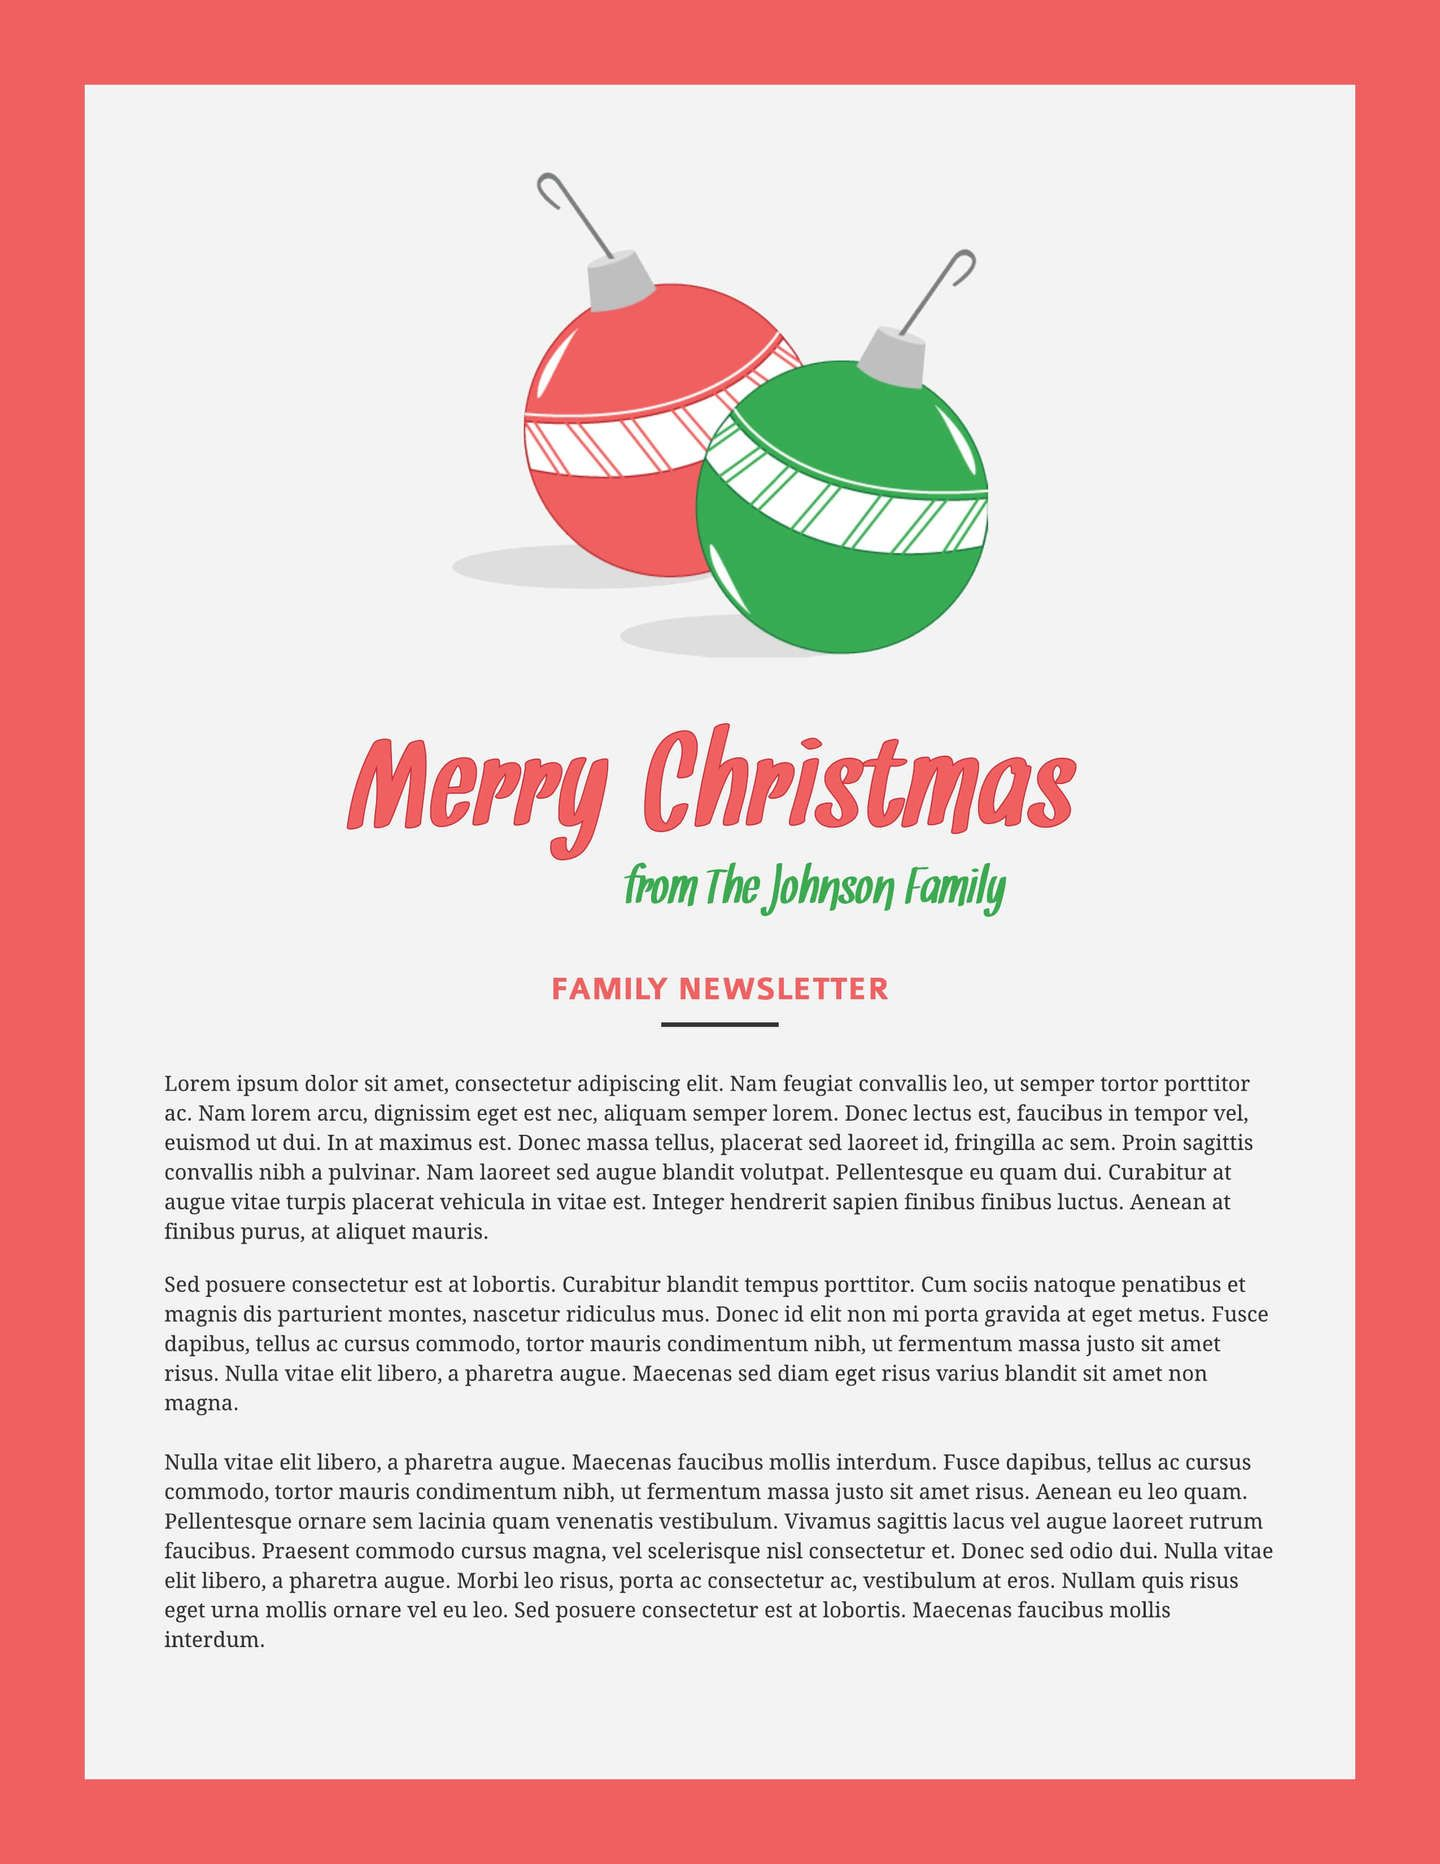 Print and Win Holiday Sweepstakes Newsletter templates